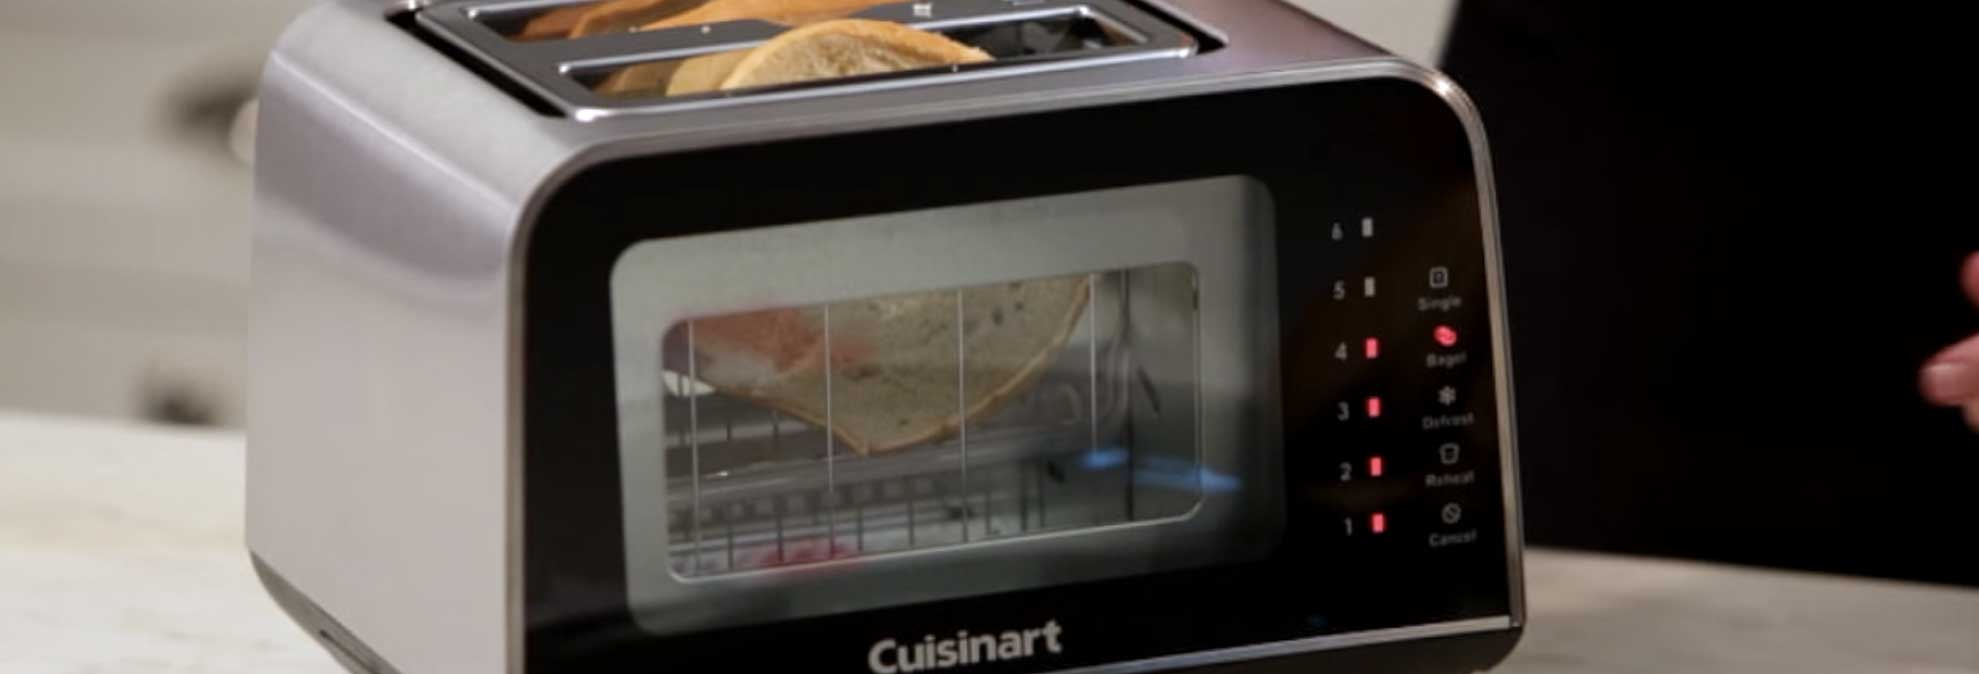 bread machine reviews consumer reports